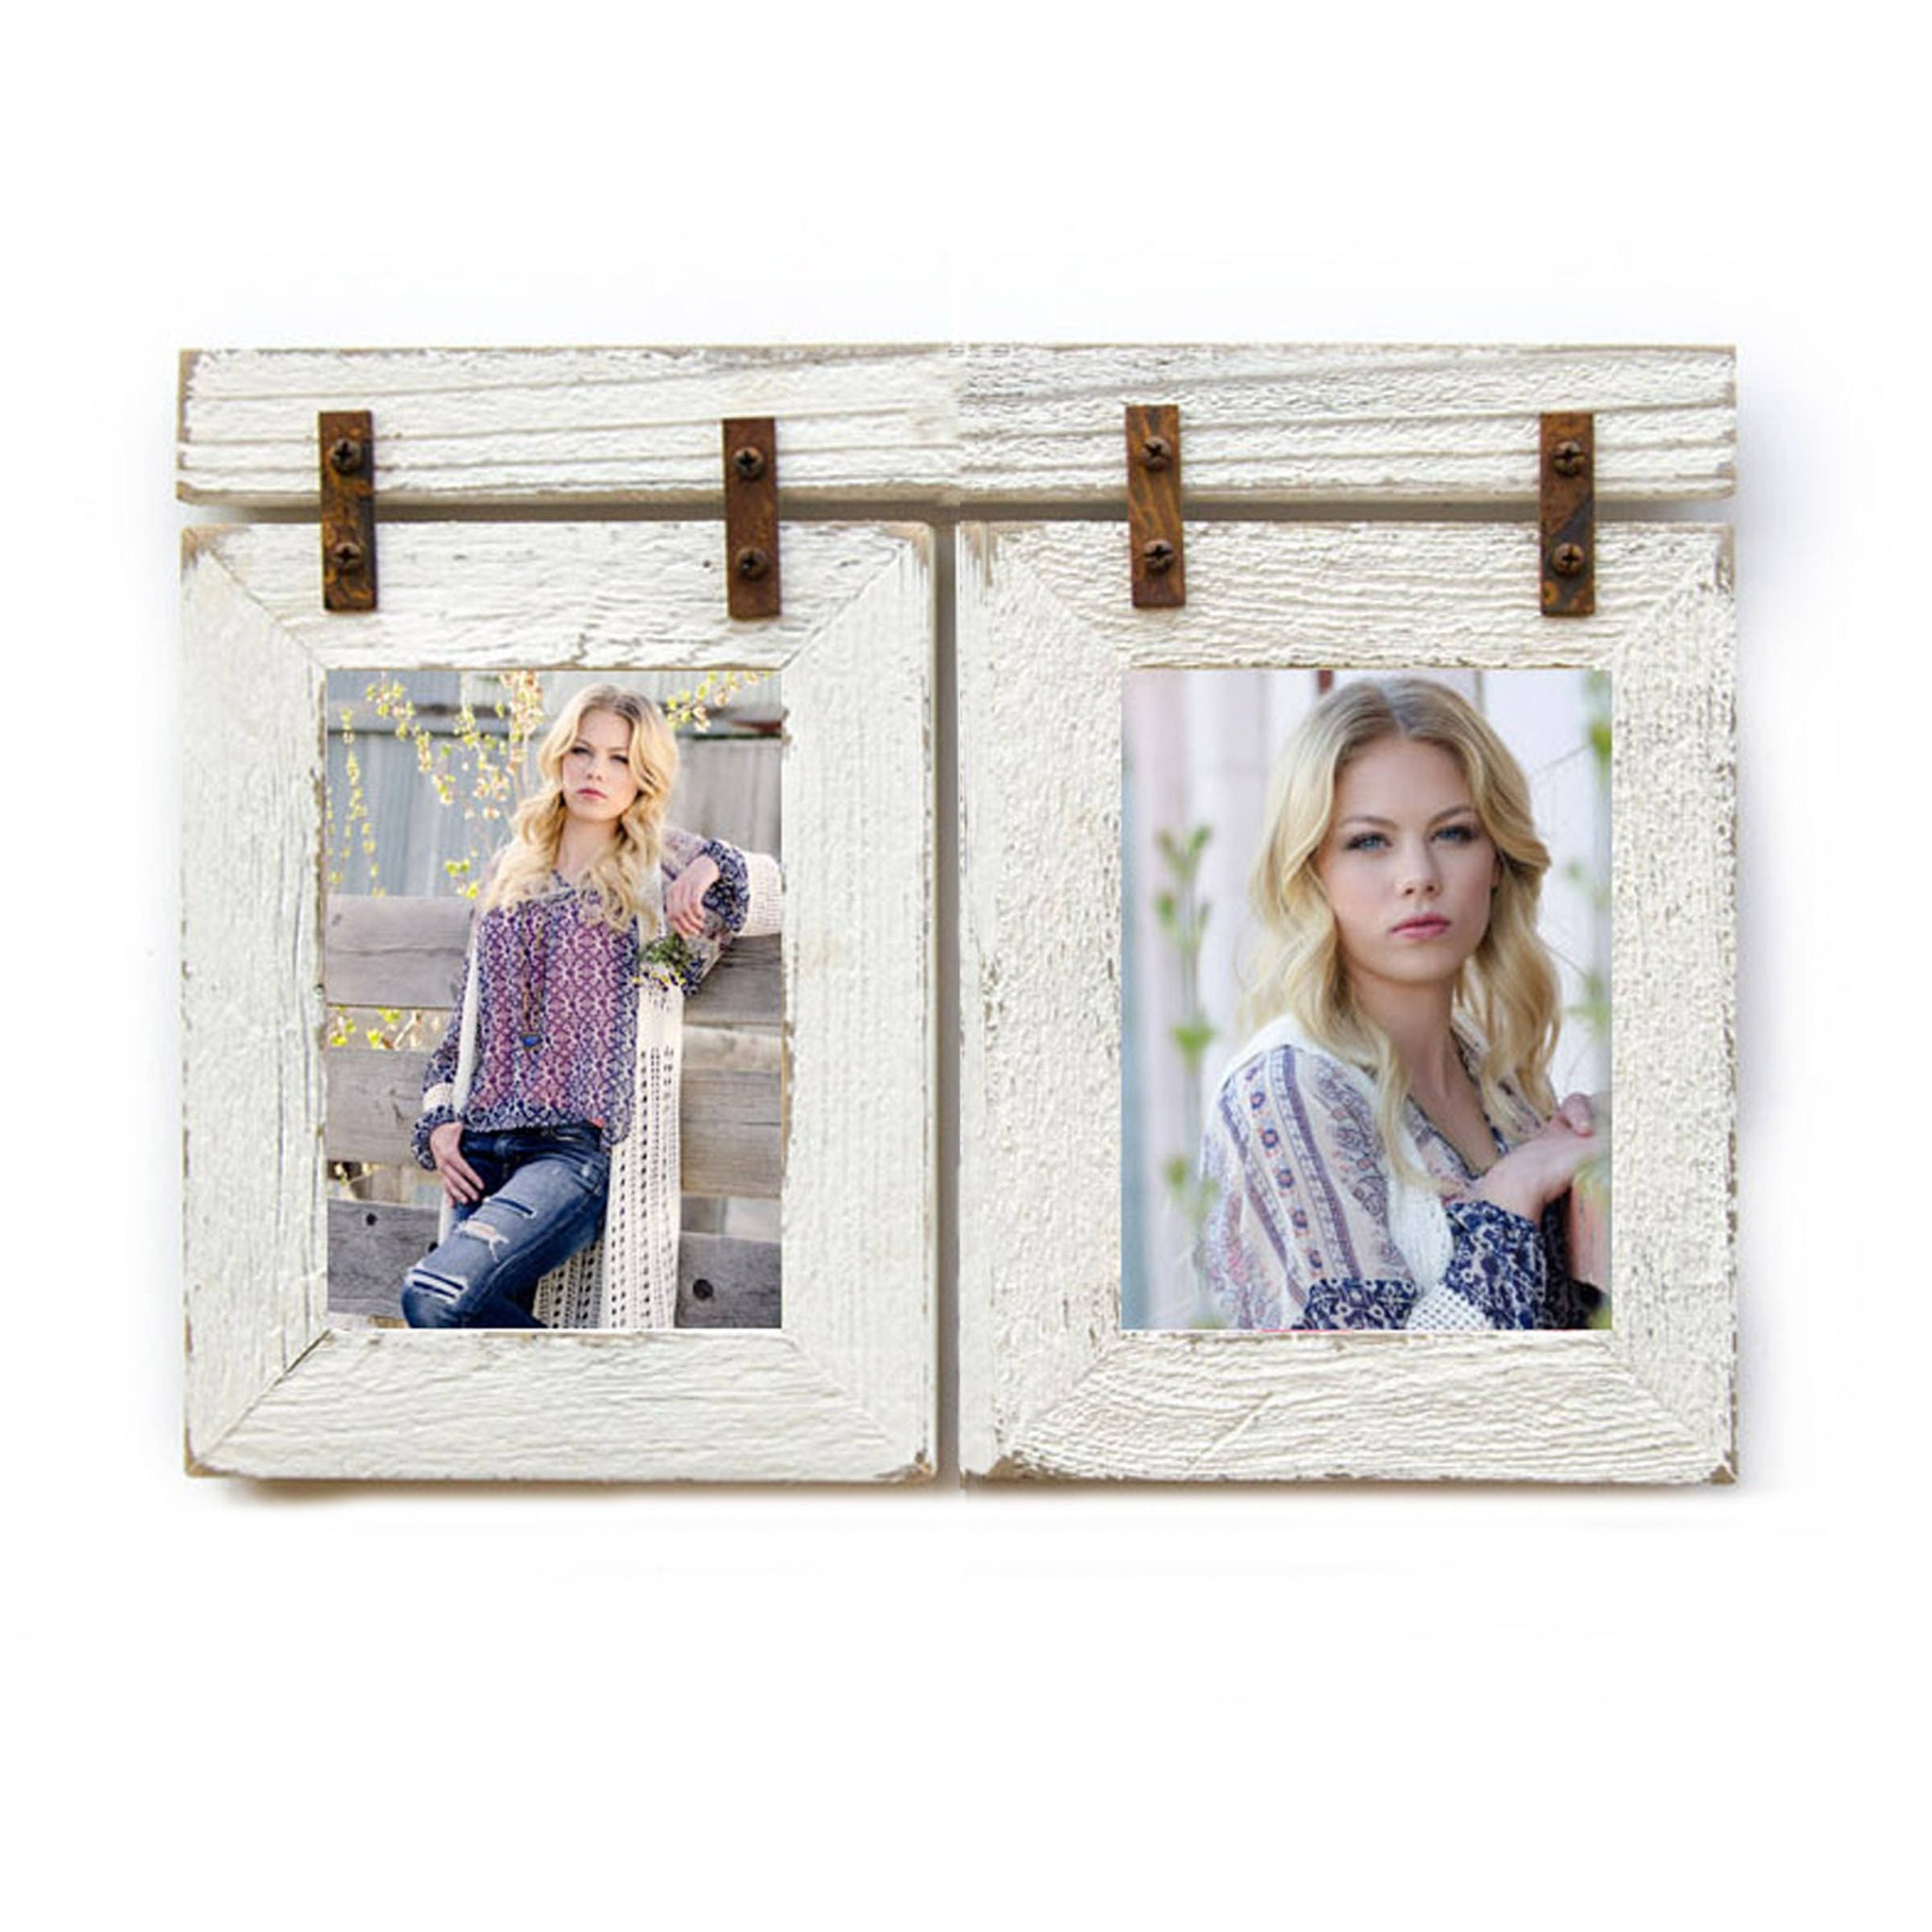 5x7 Barnwood Collage White Frame 2 5x7 Multi Opening Frame Rustic